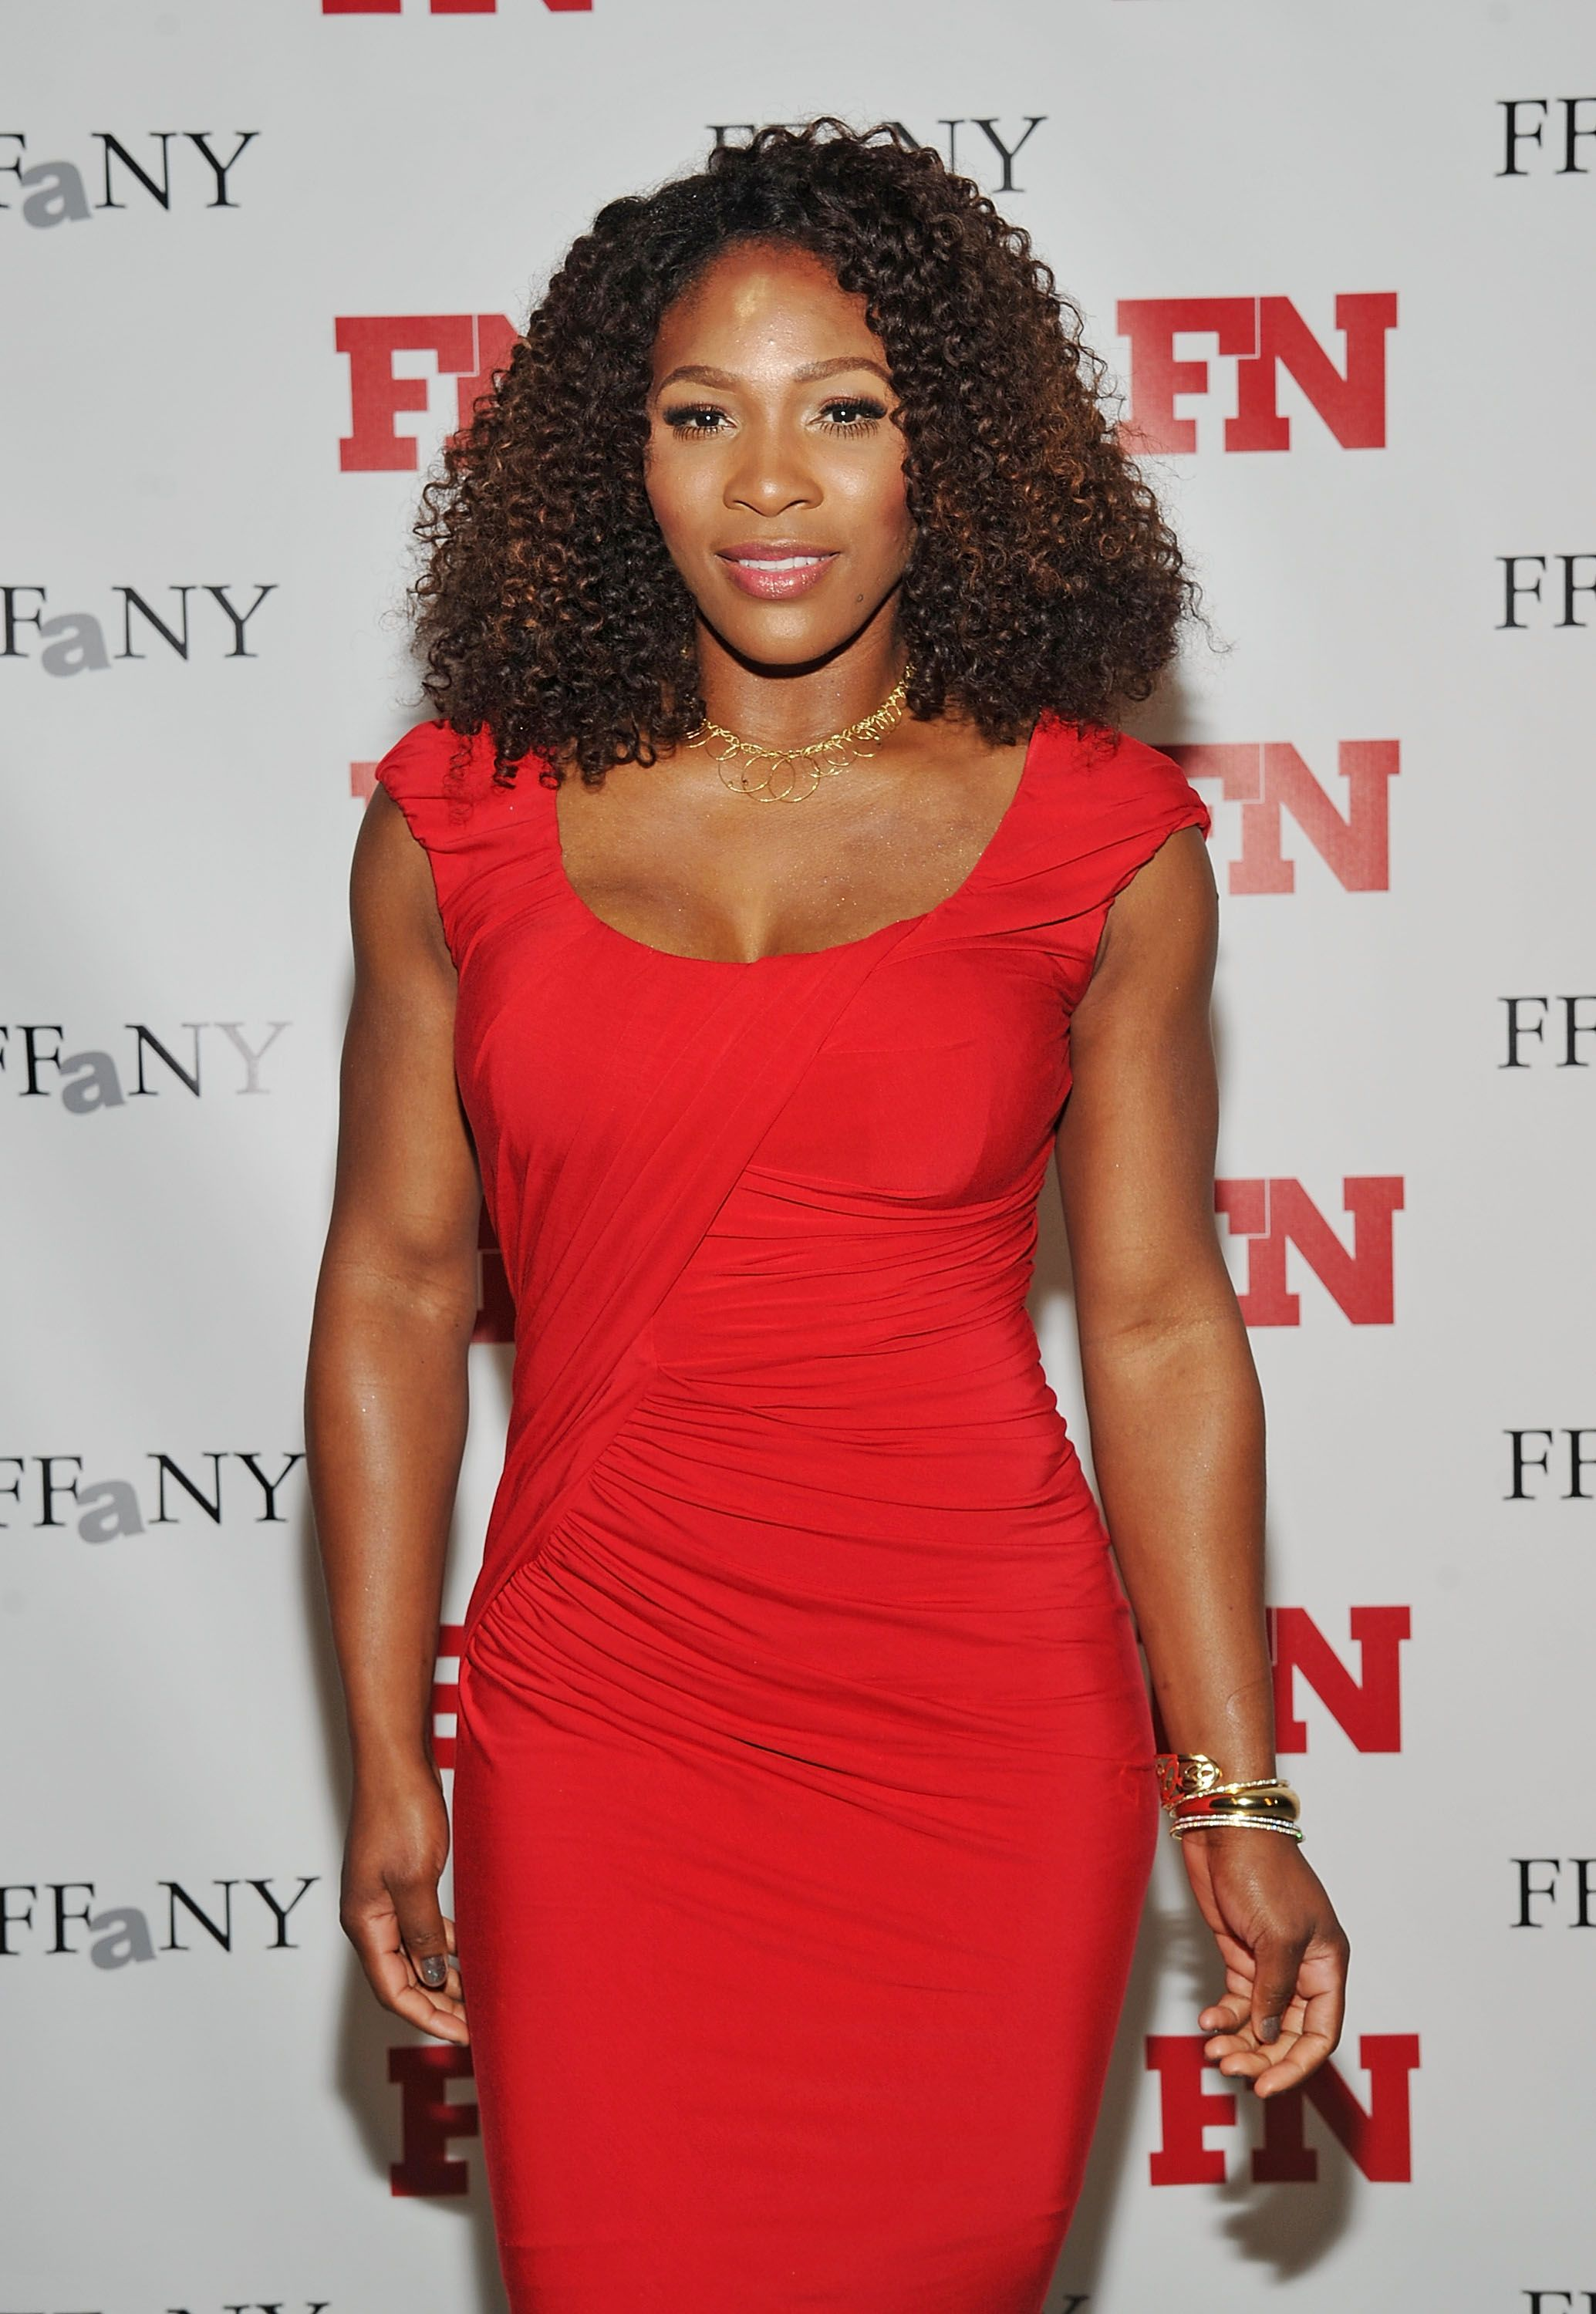 Serena Williams during the 25th Annual Footwear News Achievement Awards at the Museum of Modern Art on November 29, 2011 in New York City.   Source: Getty Images